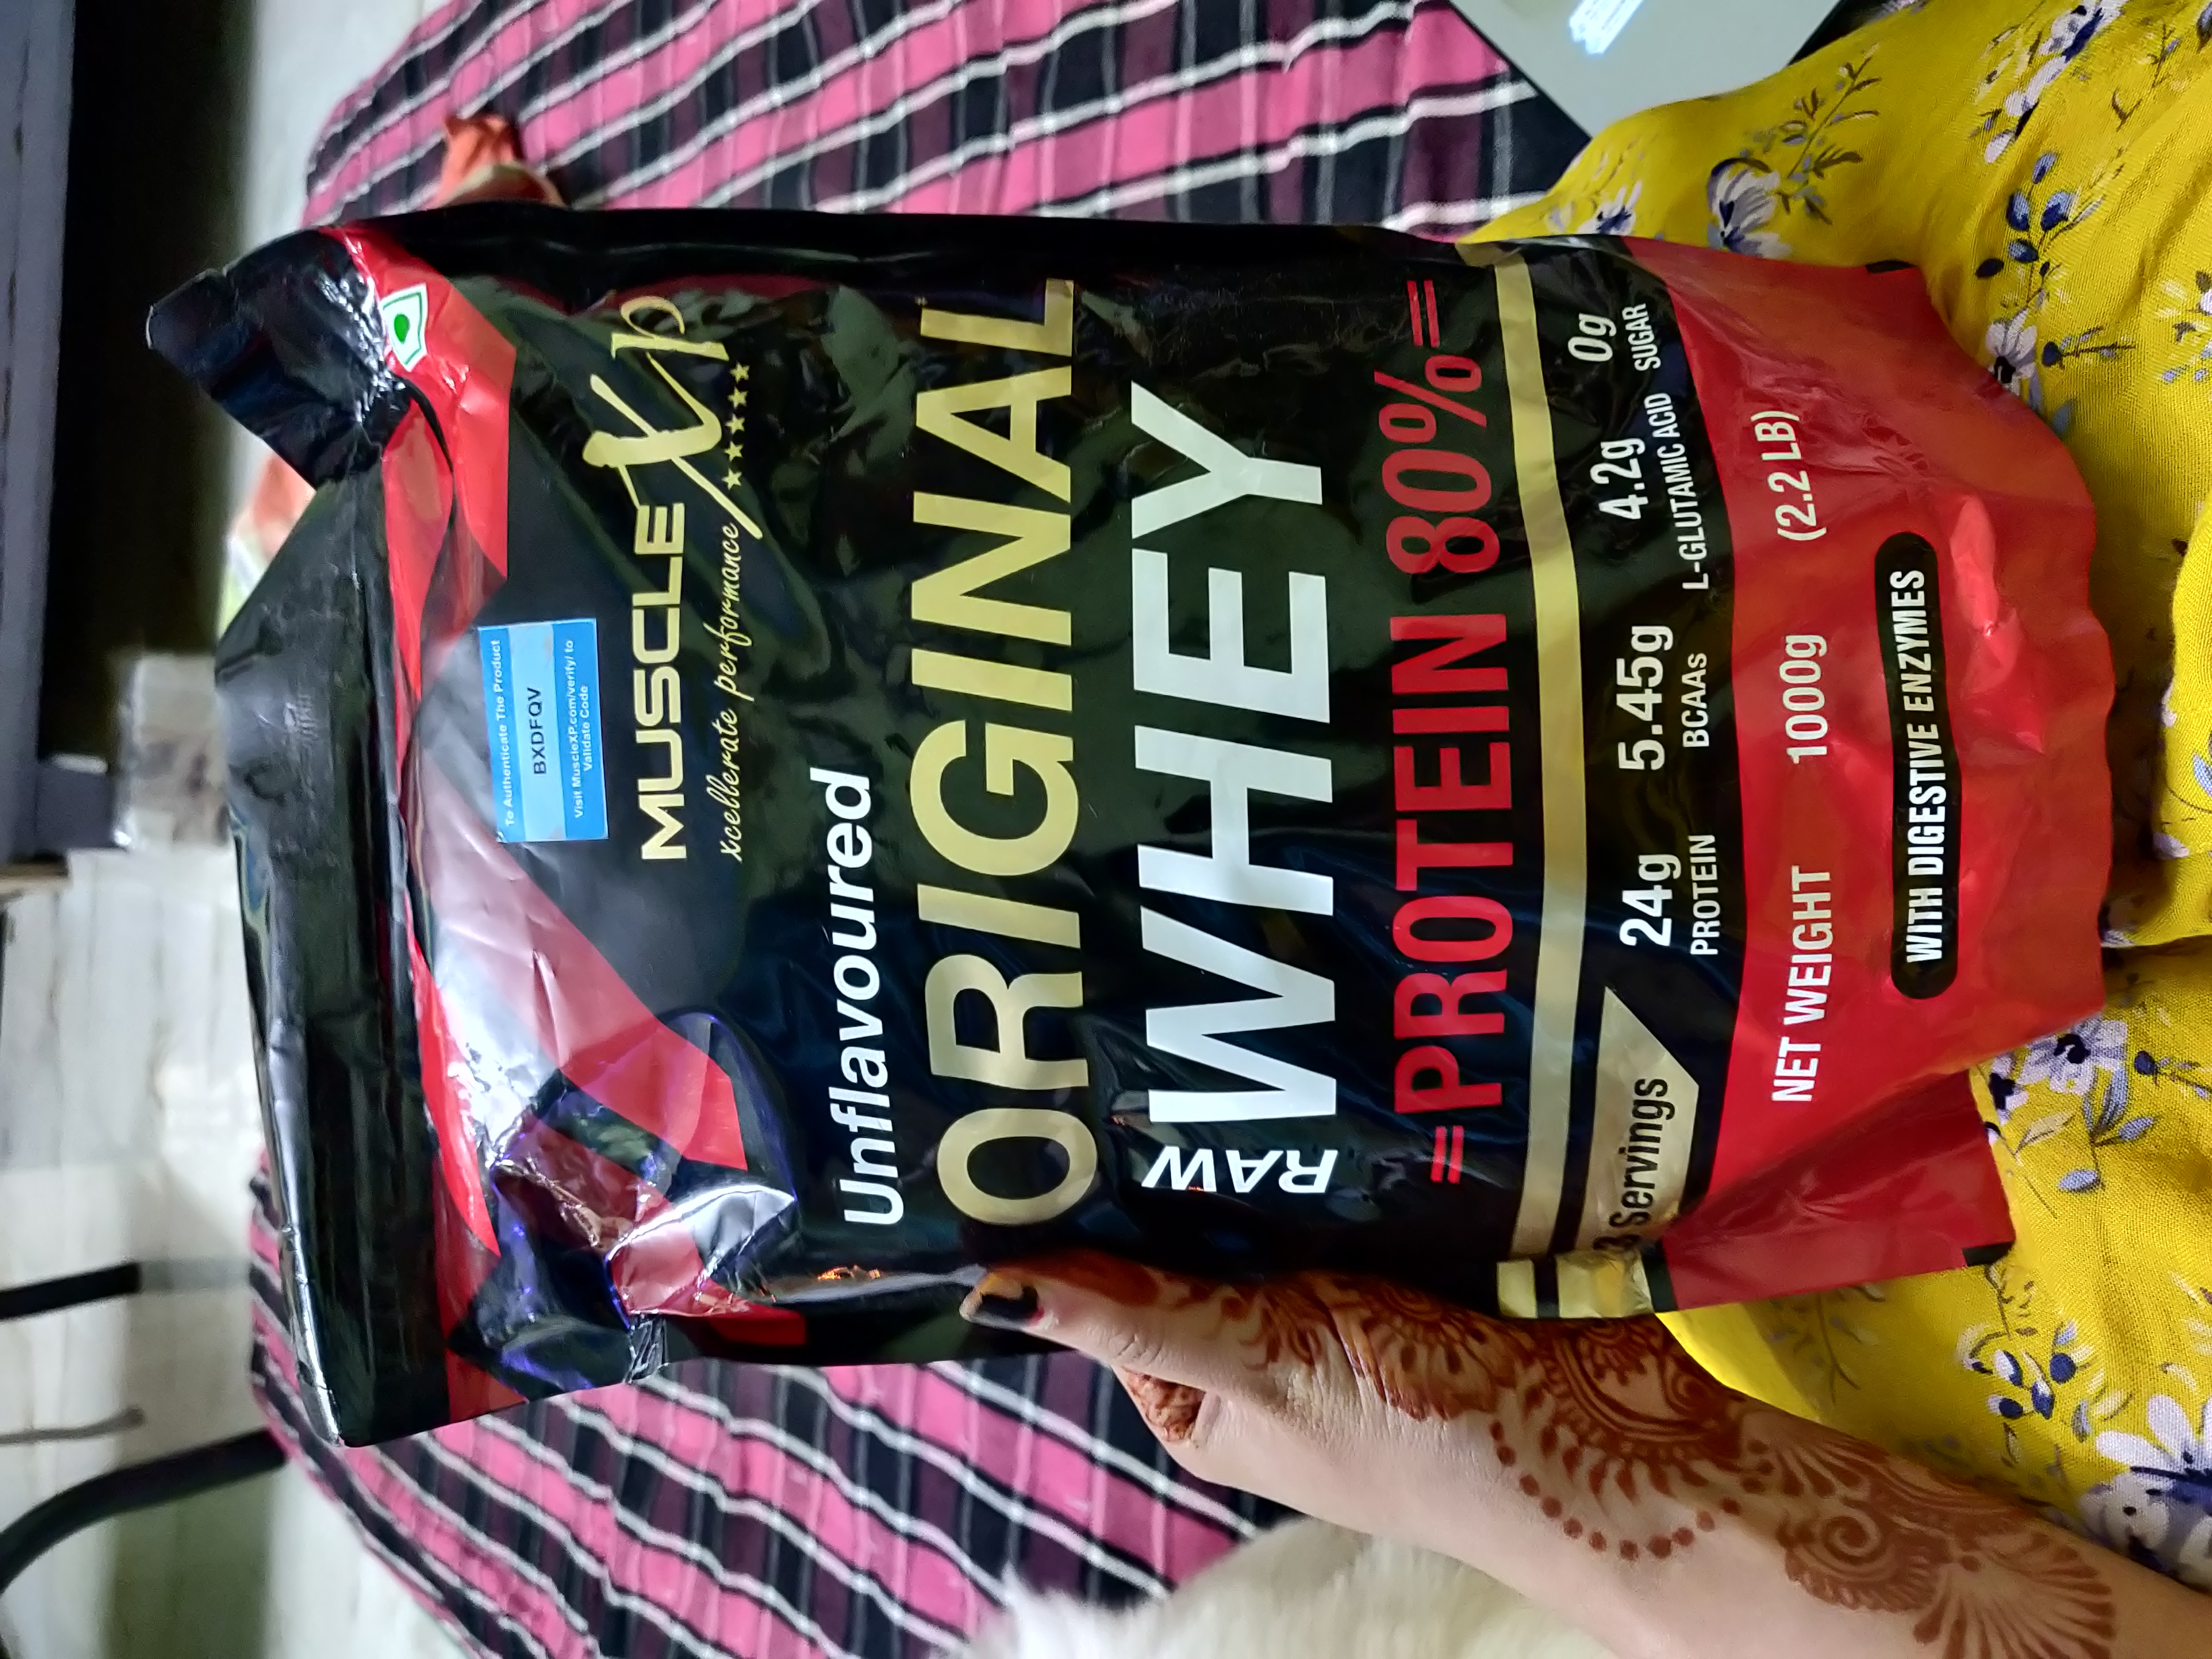 MuscleXP Raw Whey Protein 80% Powder Unflavoured-Perfect for beginners-By shivaniomray